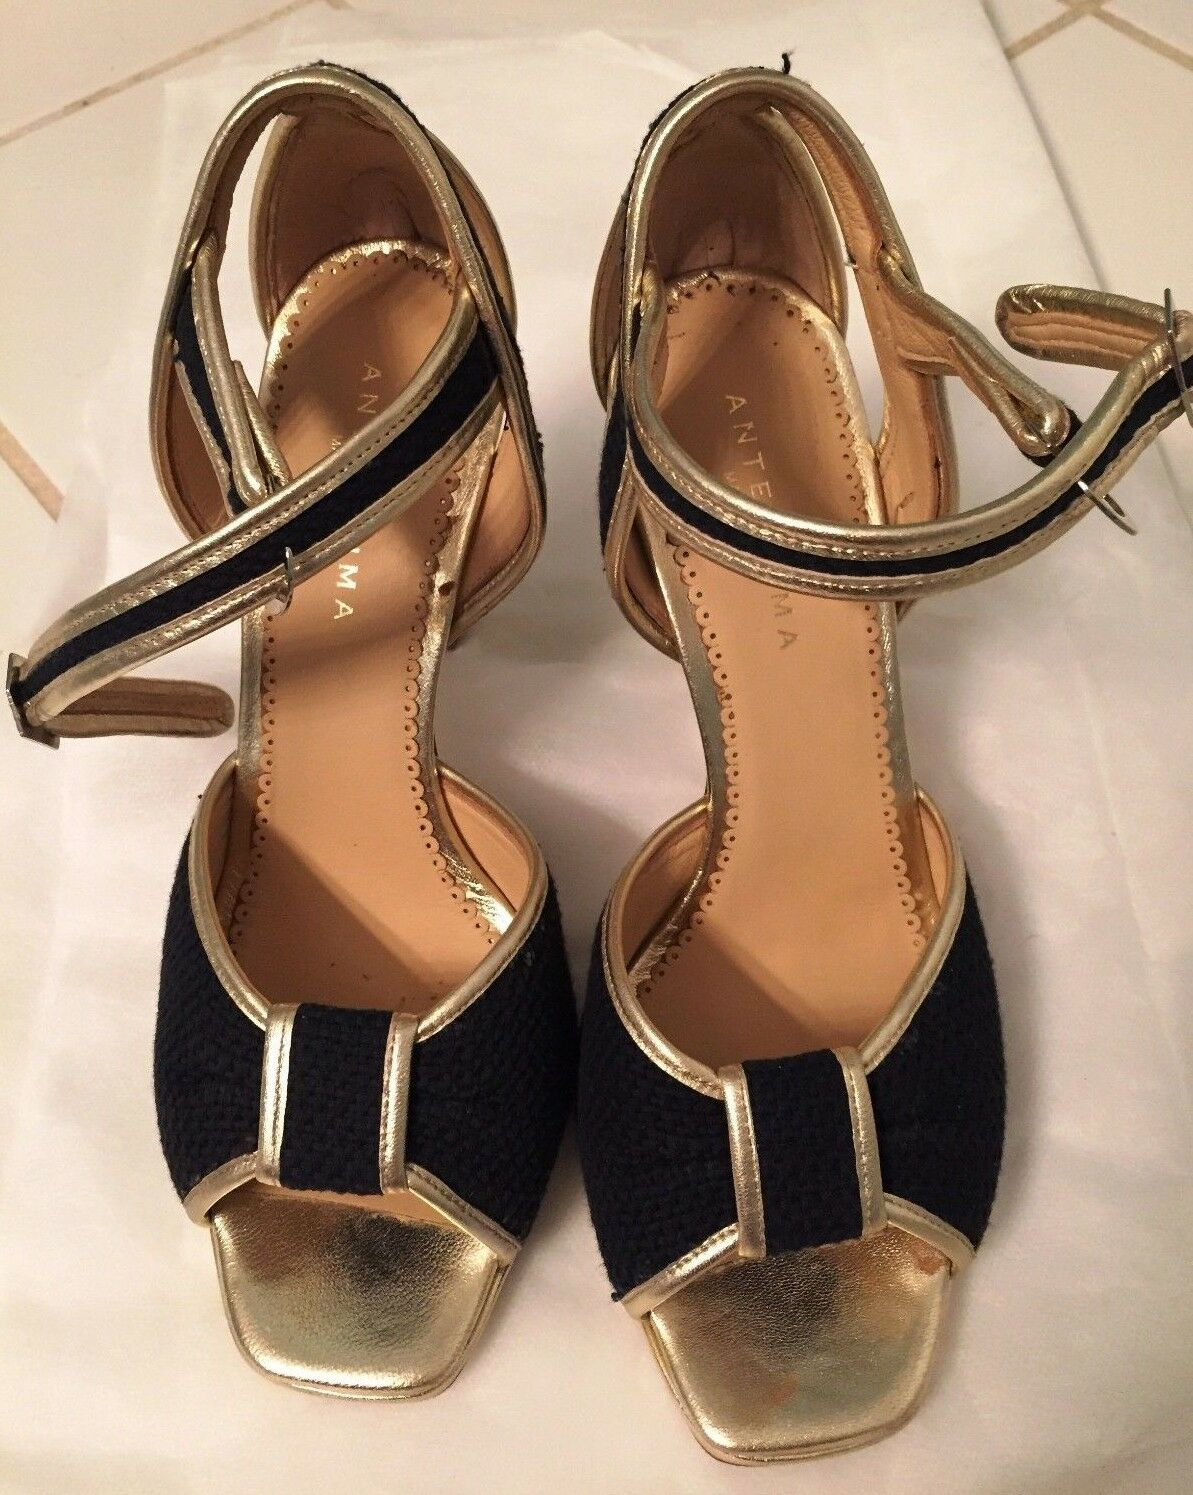 Authentic Anteprima Sporty Canvas Heel Heel Heel schuhe, Größe 8   38, Gold Dark Blau bb5f81